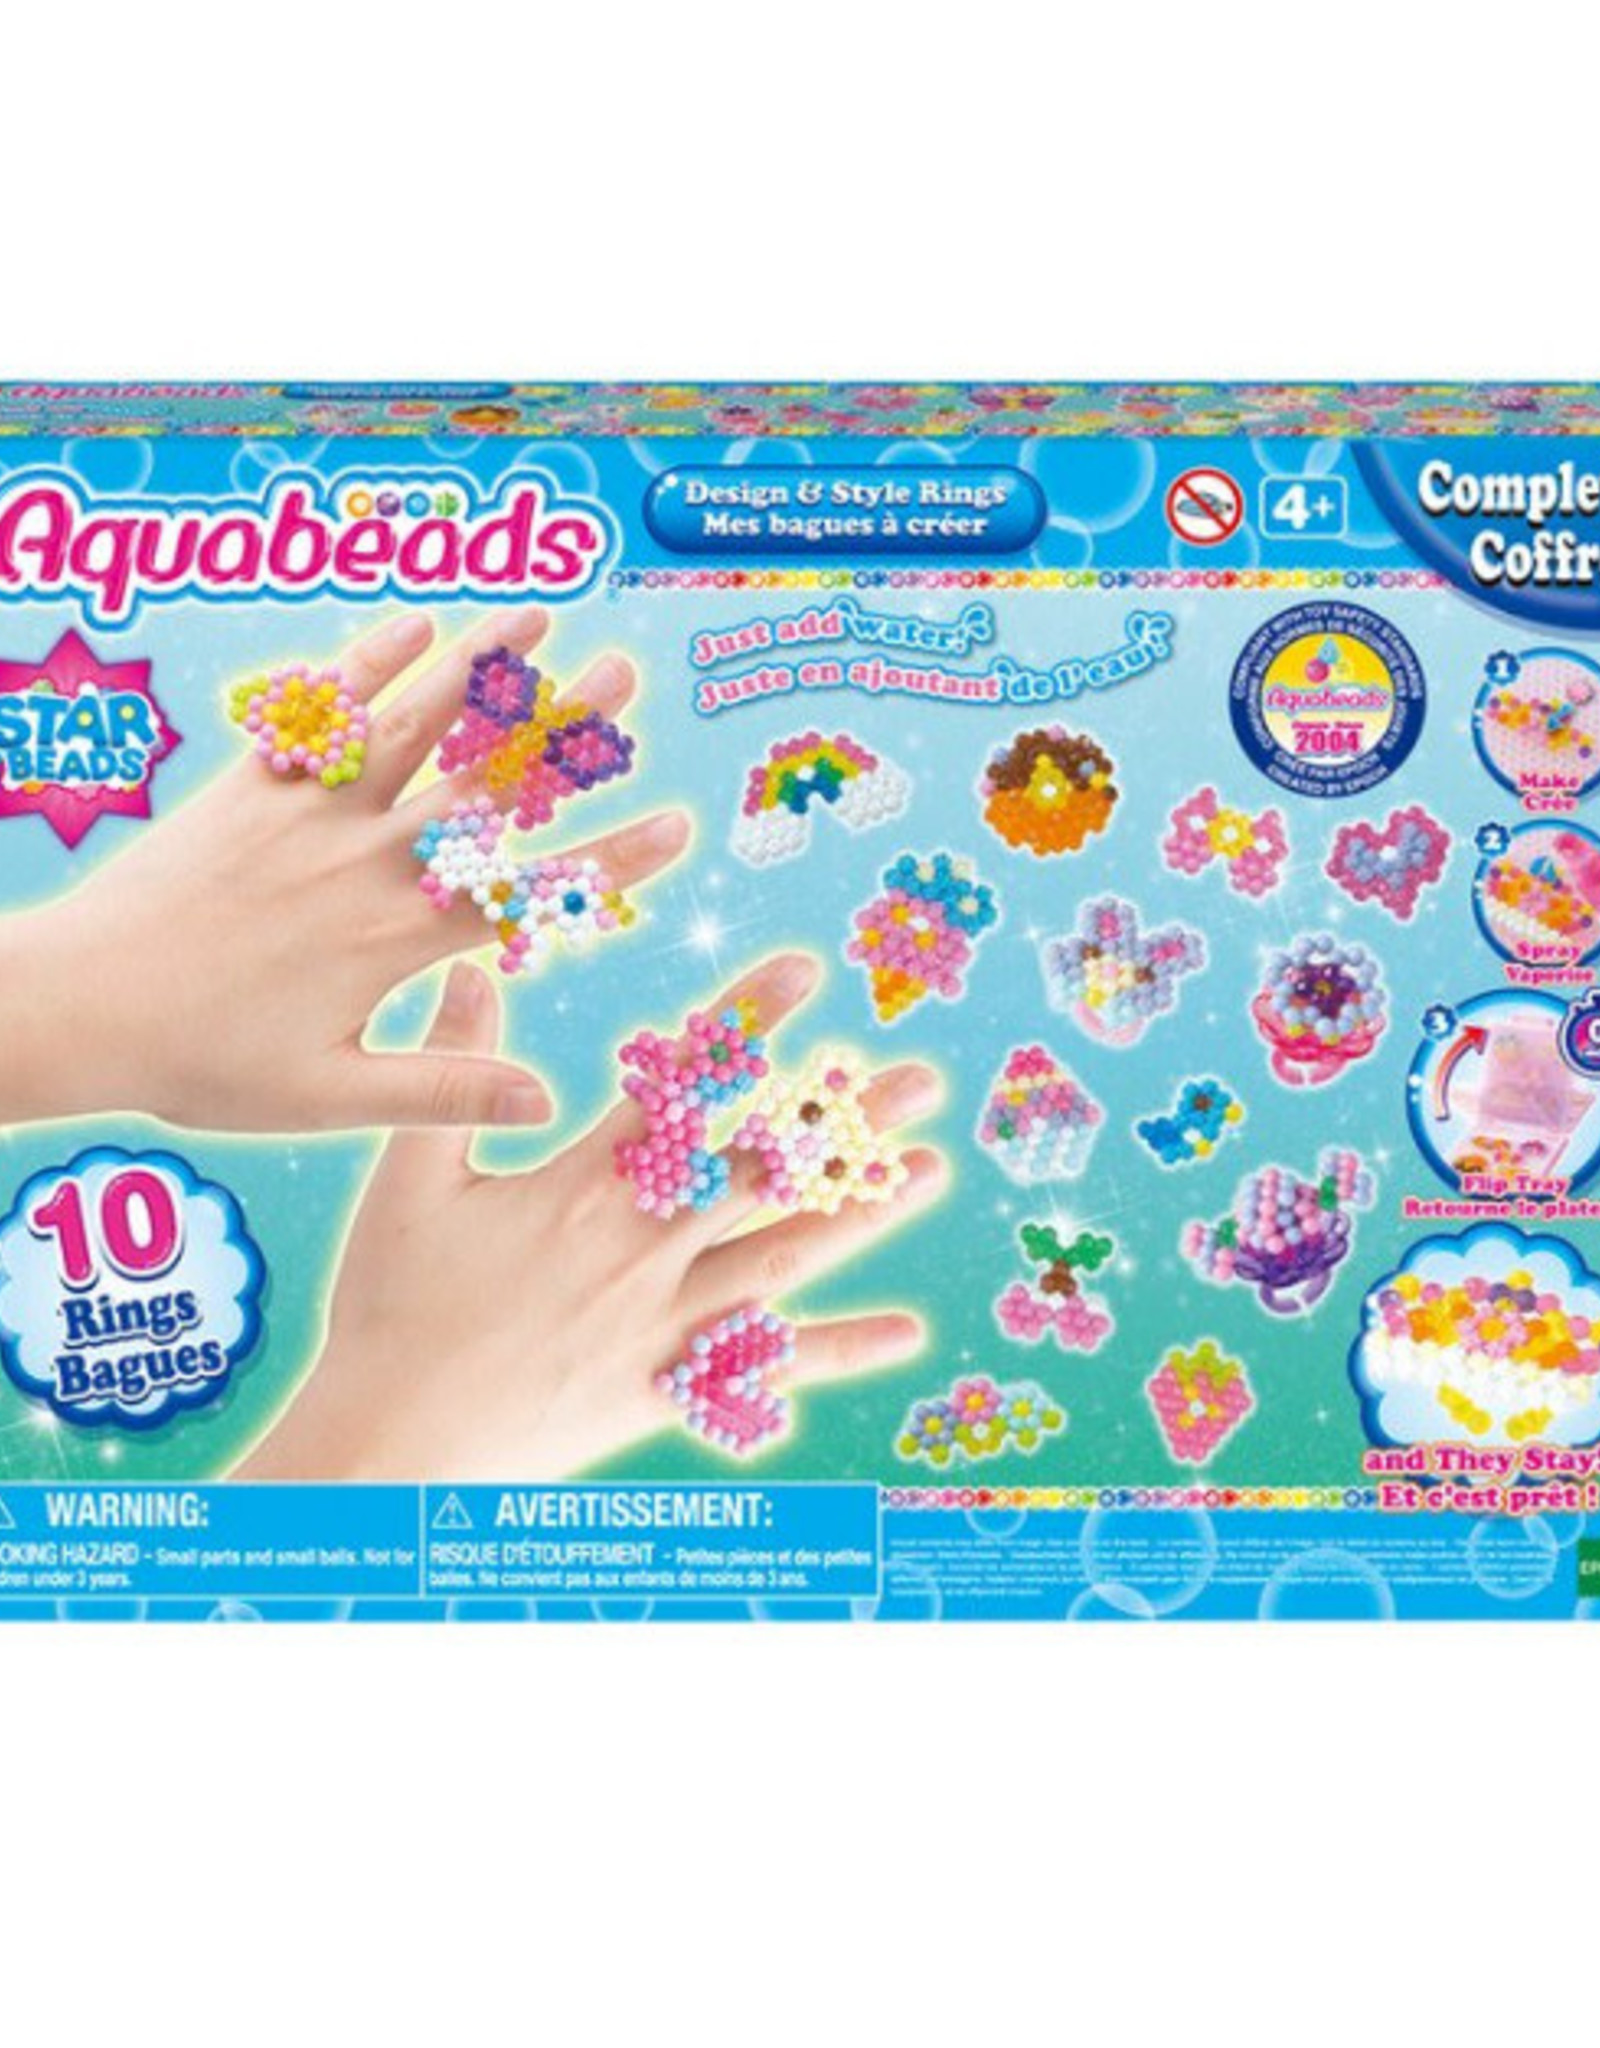 Aquabeads Design & Style Rings